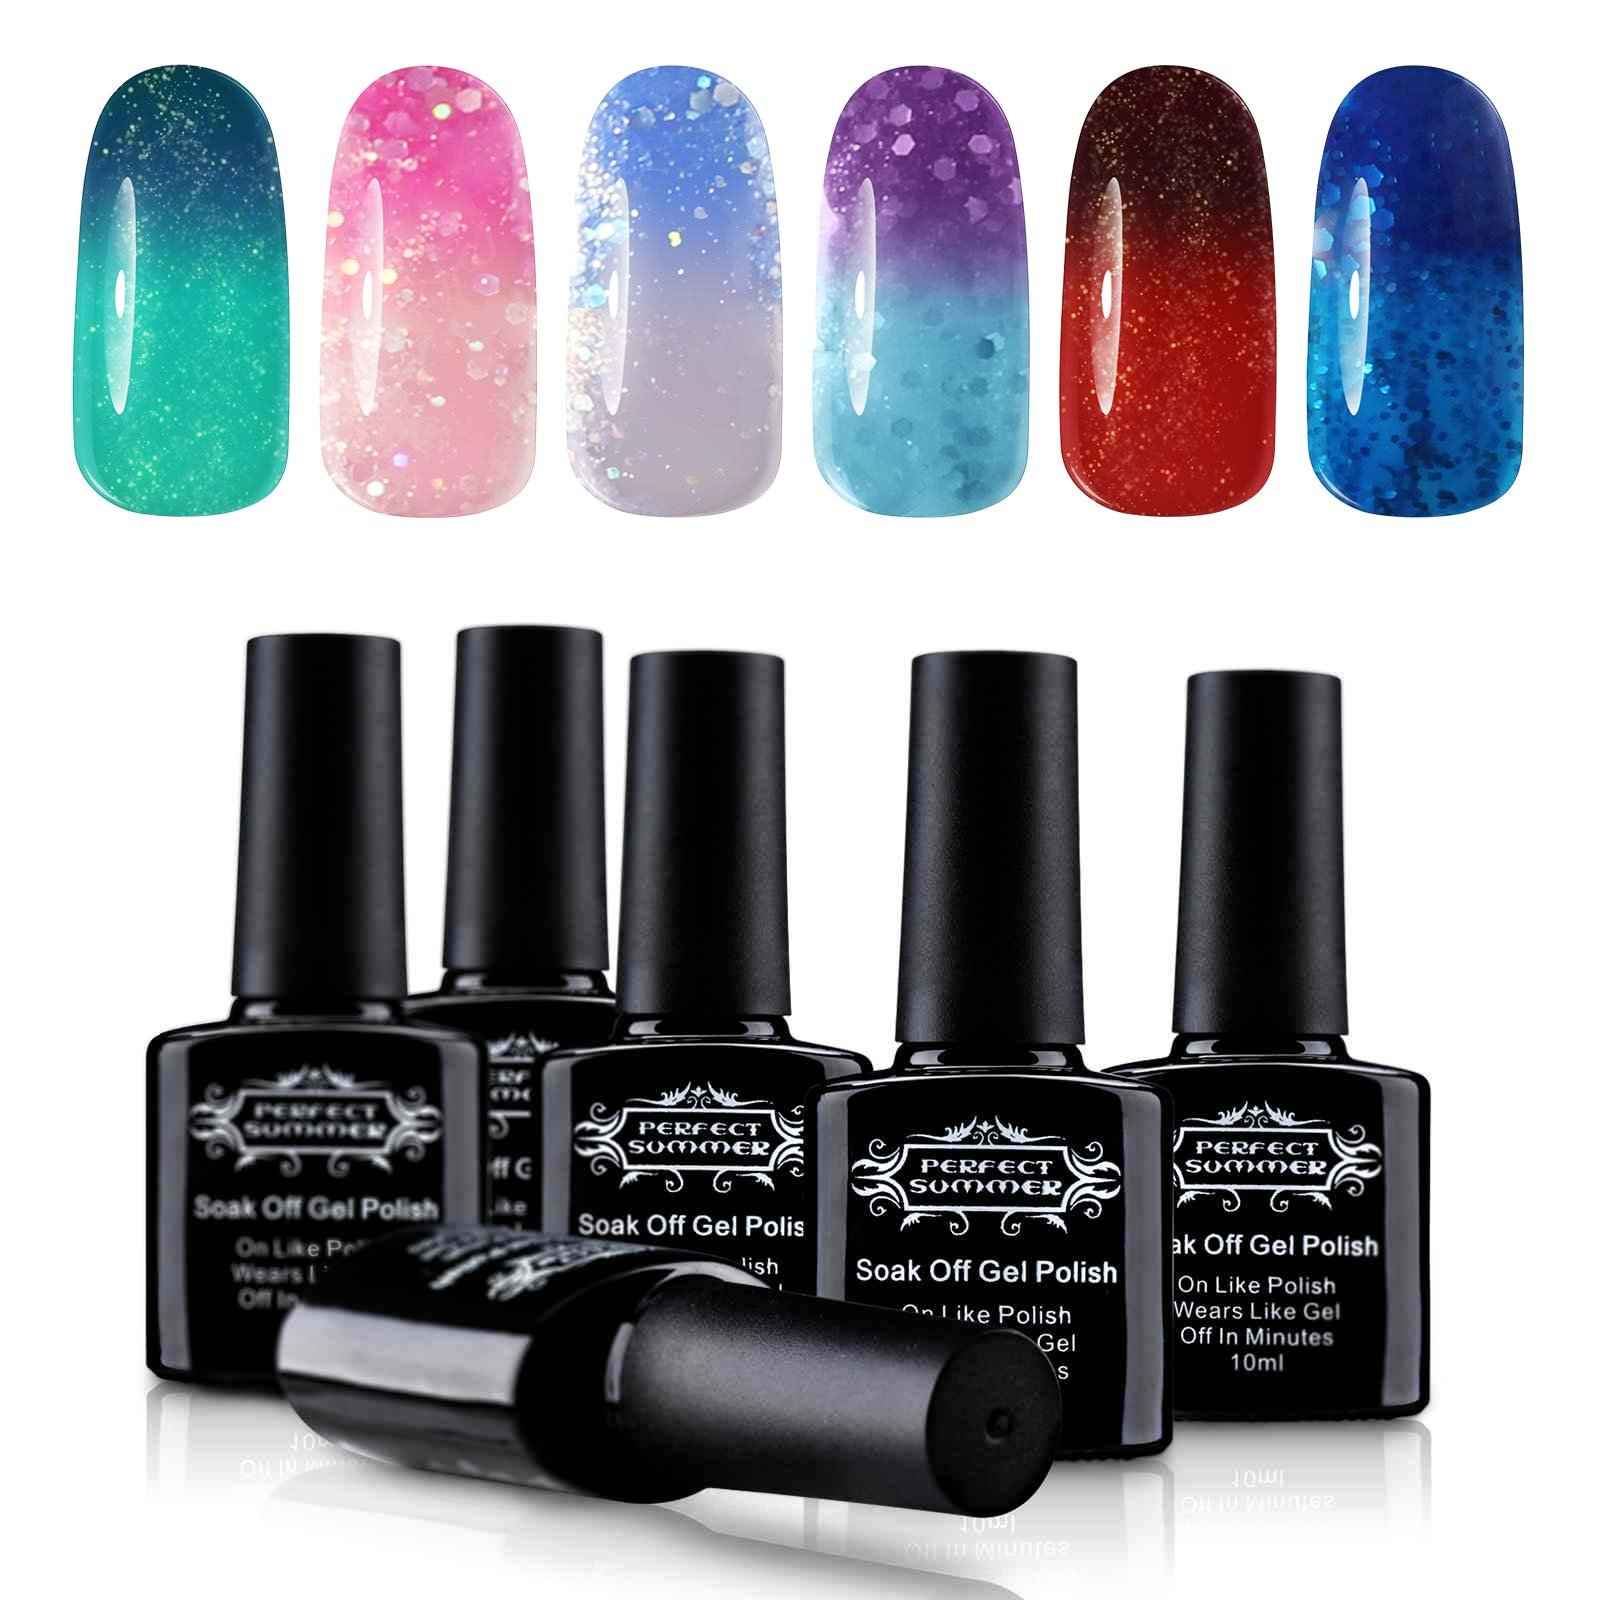 Soak Off UV/LED Gel Nail Polish, Mood Changing, Temperature Colors Changes Perfect Match Thermal Lacquers, Pack of 6 x 10ml -Set #03 by Perfect Summer